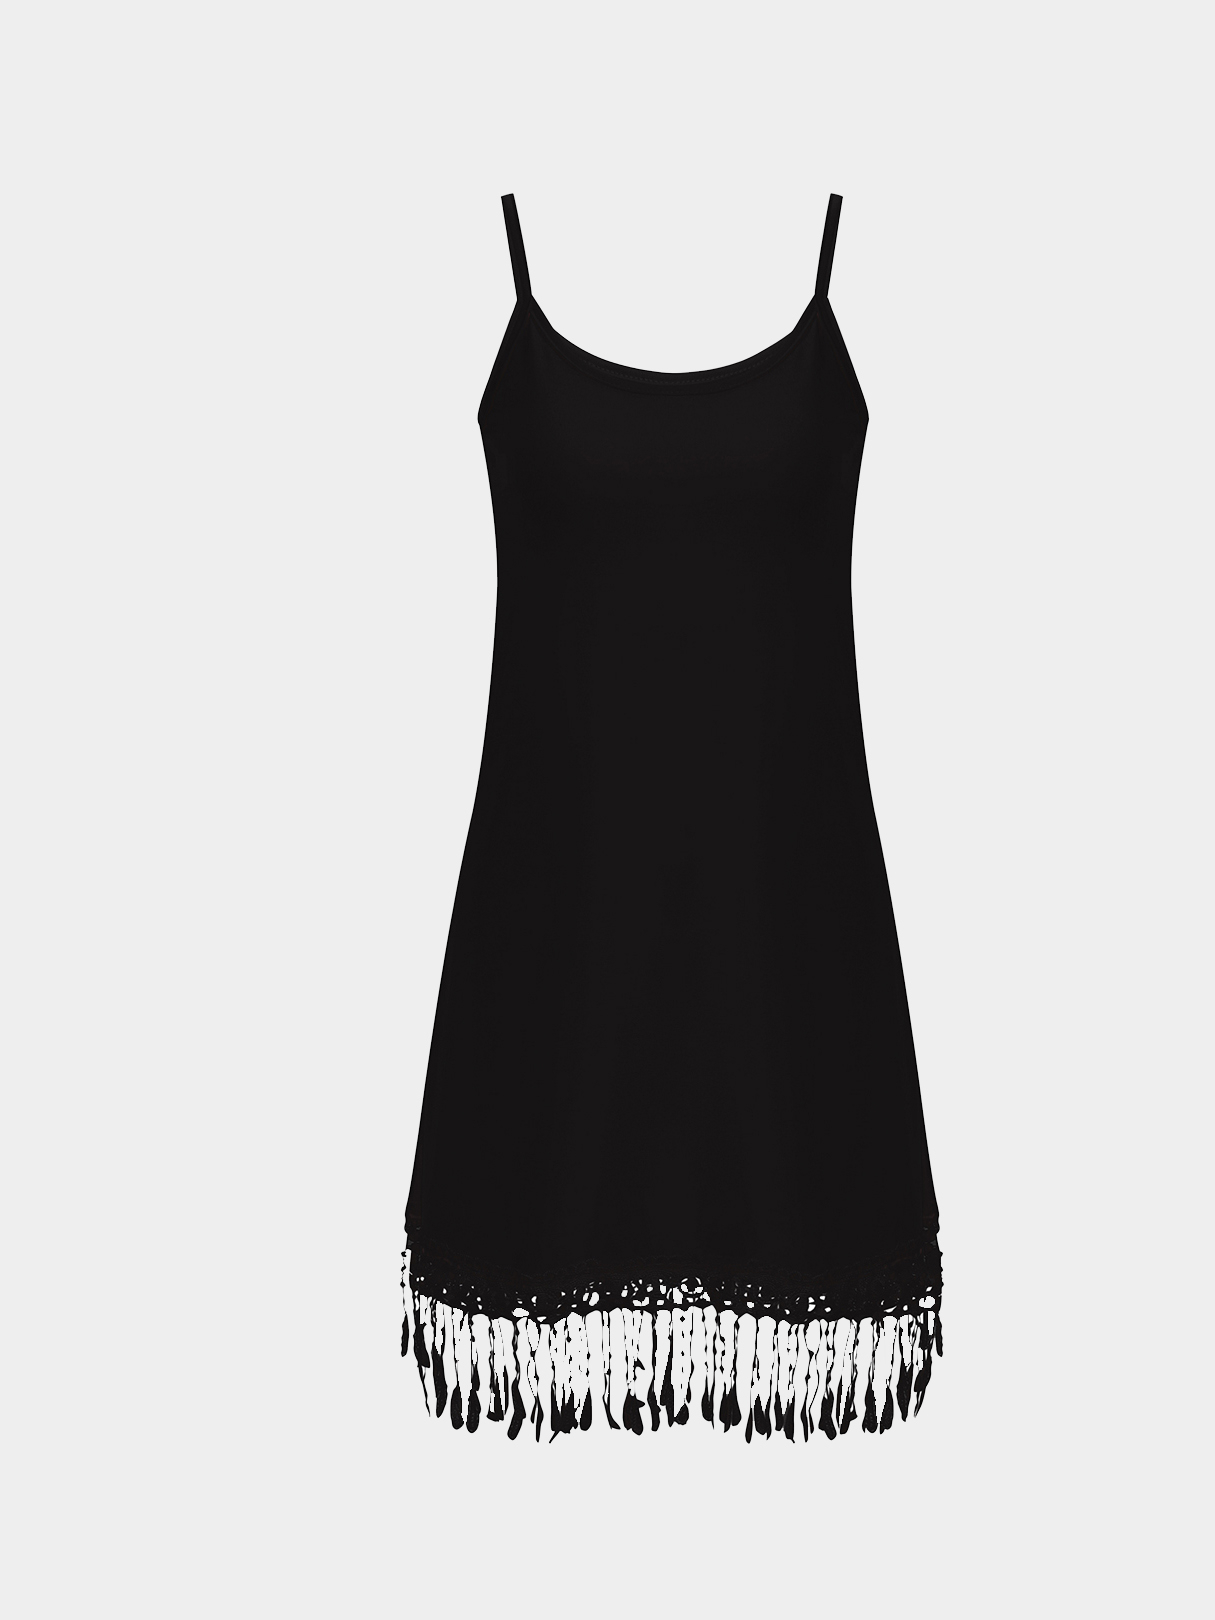 Black Cami Dress with Crochet Lace Details